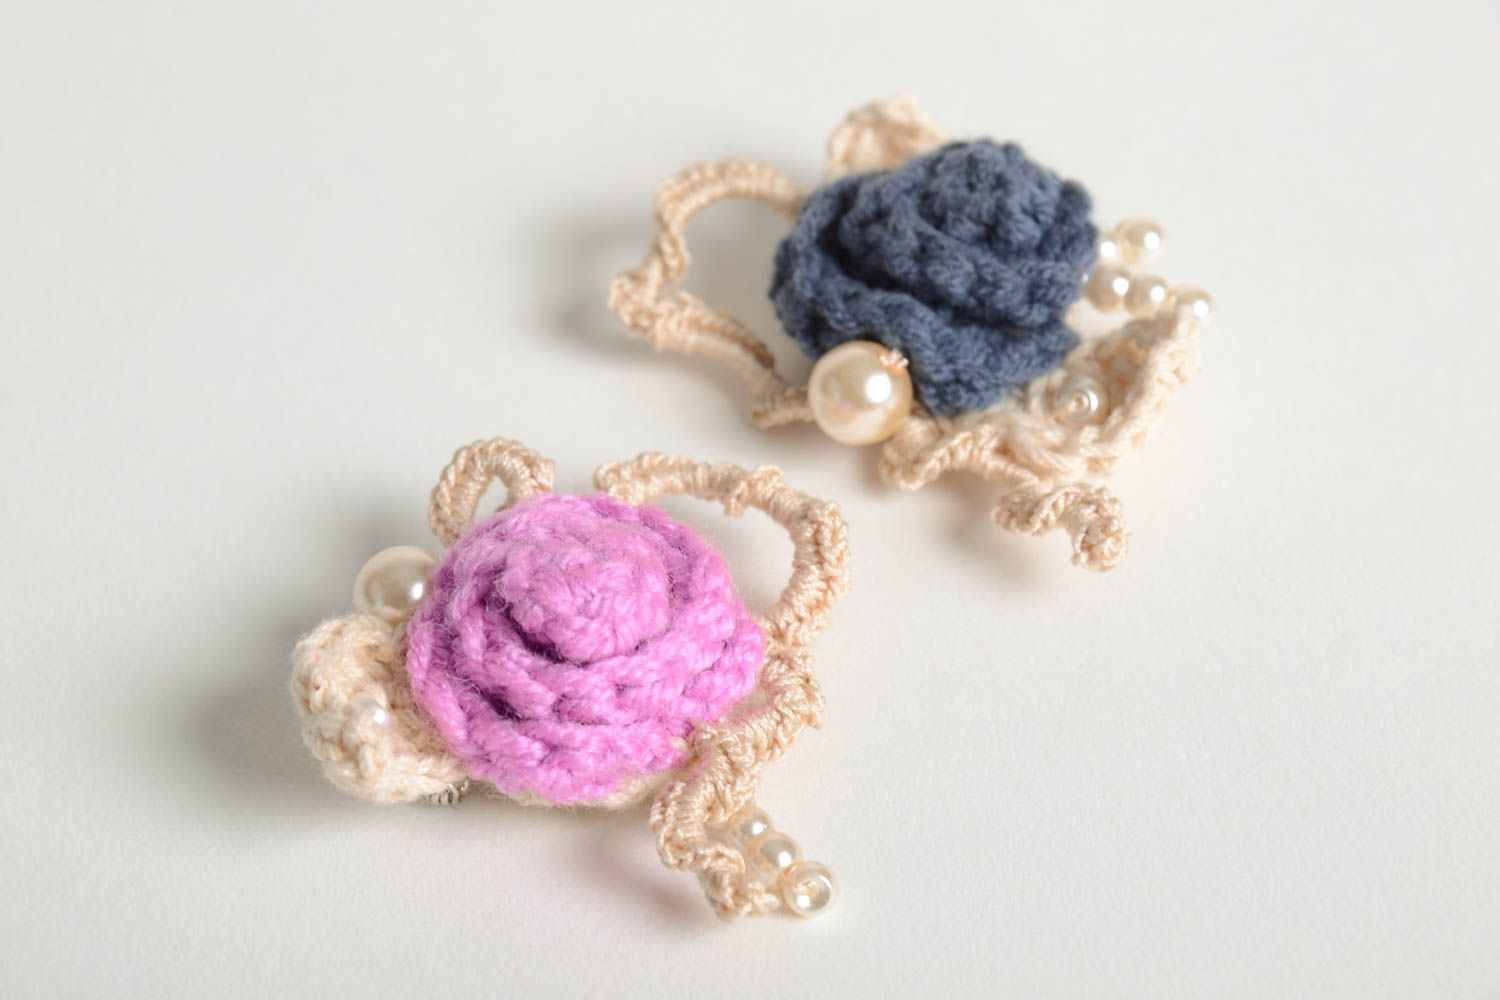 Crochet brooch handmade brooches textile jewelry designer accessories for girls photo 2